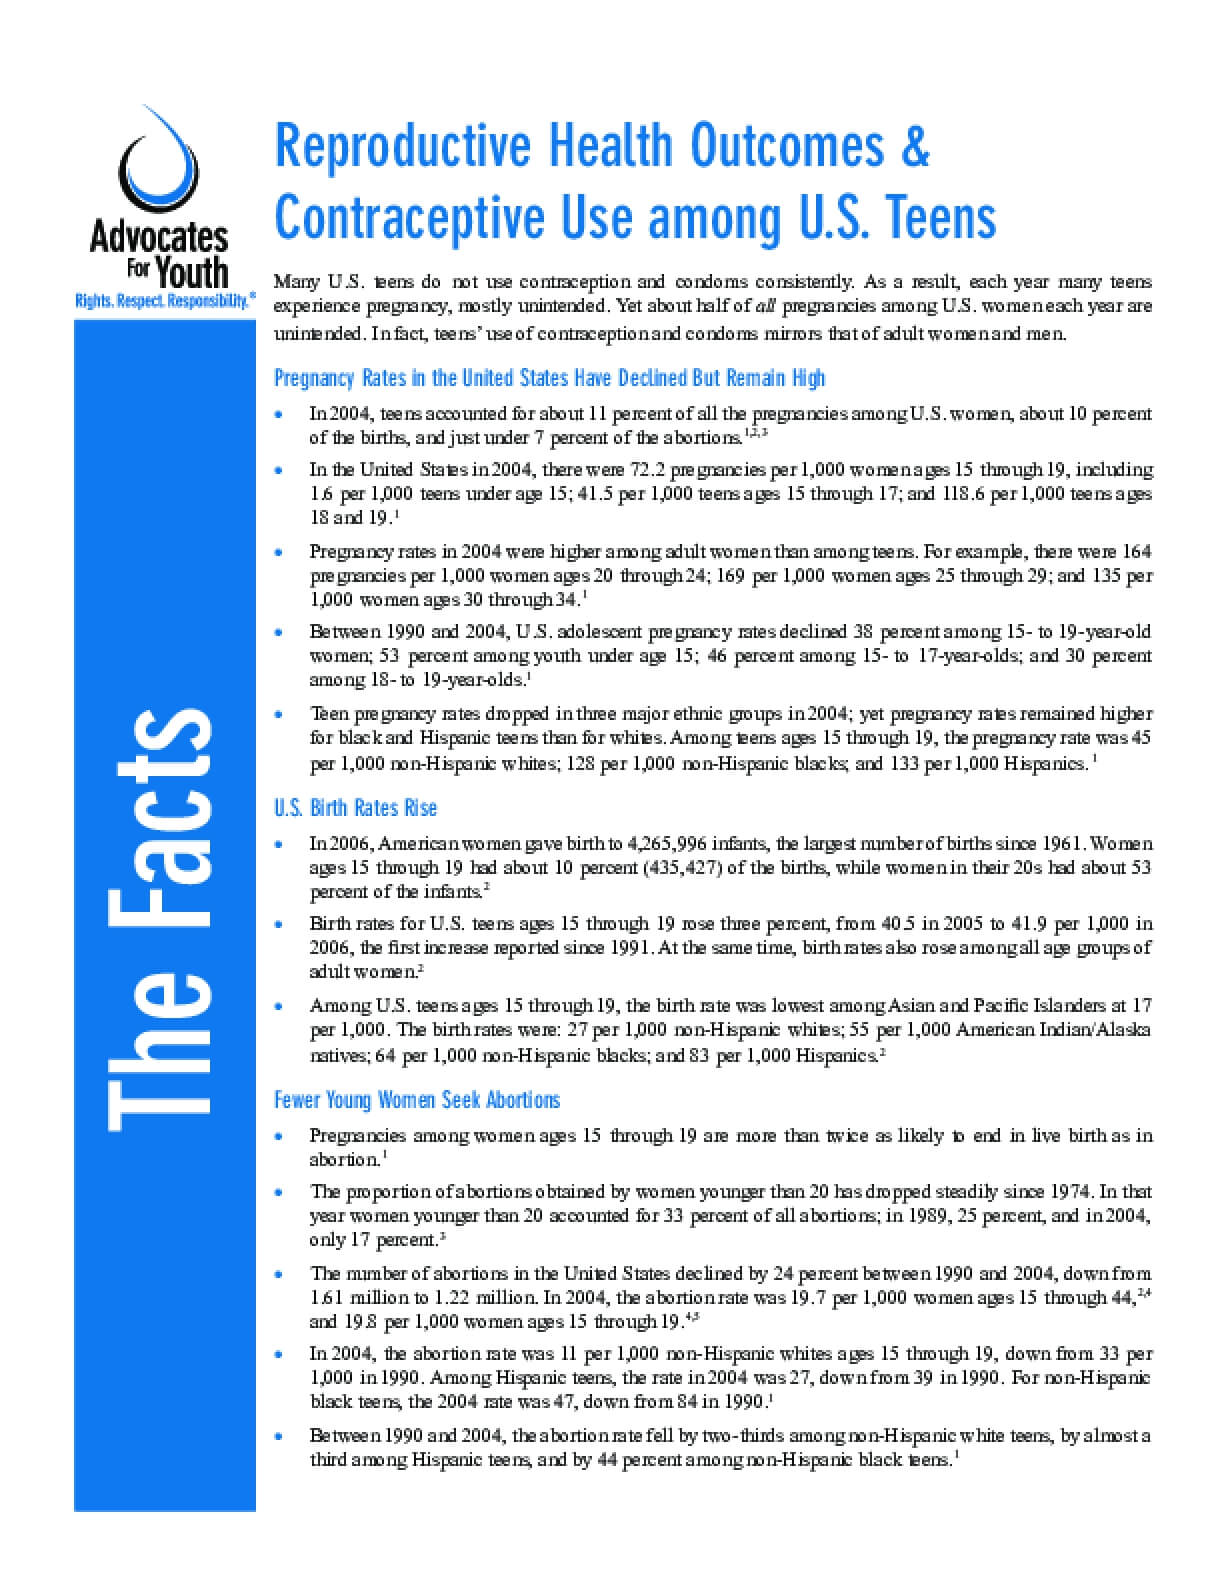 Reproductive Health Outcomes & Contraceptive Use among U.S. Teens